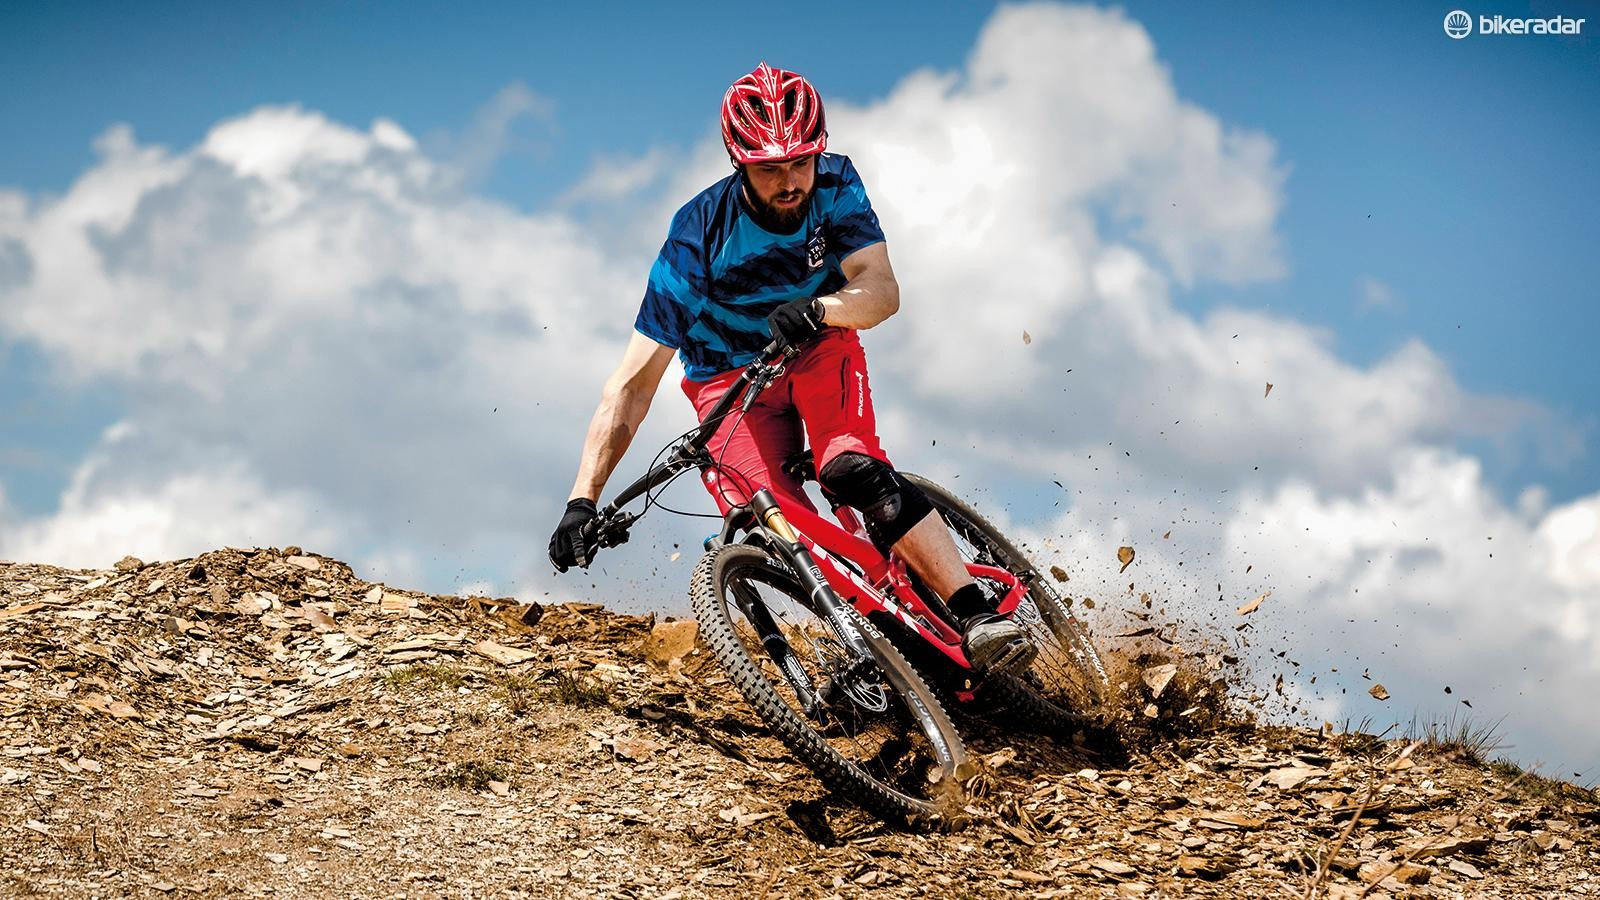 The Slash is genuinely DH bike fast in how it carries speed through roots, rocks, wheel-eating holes and stepdowns